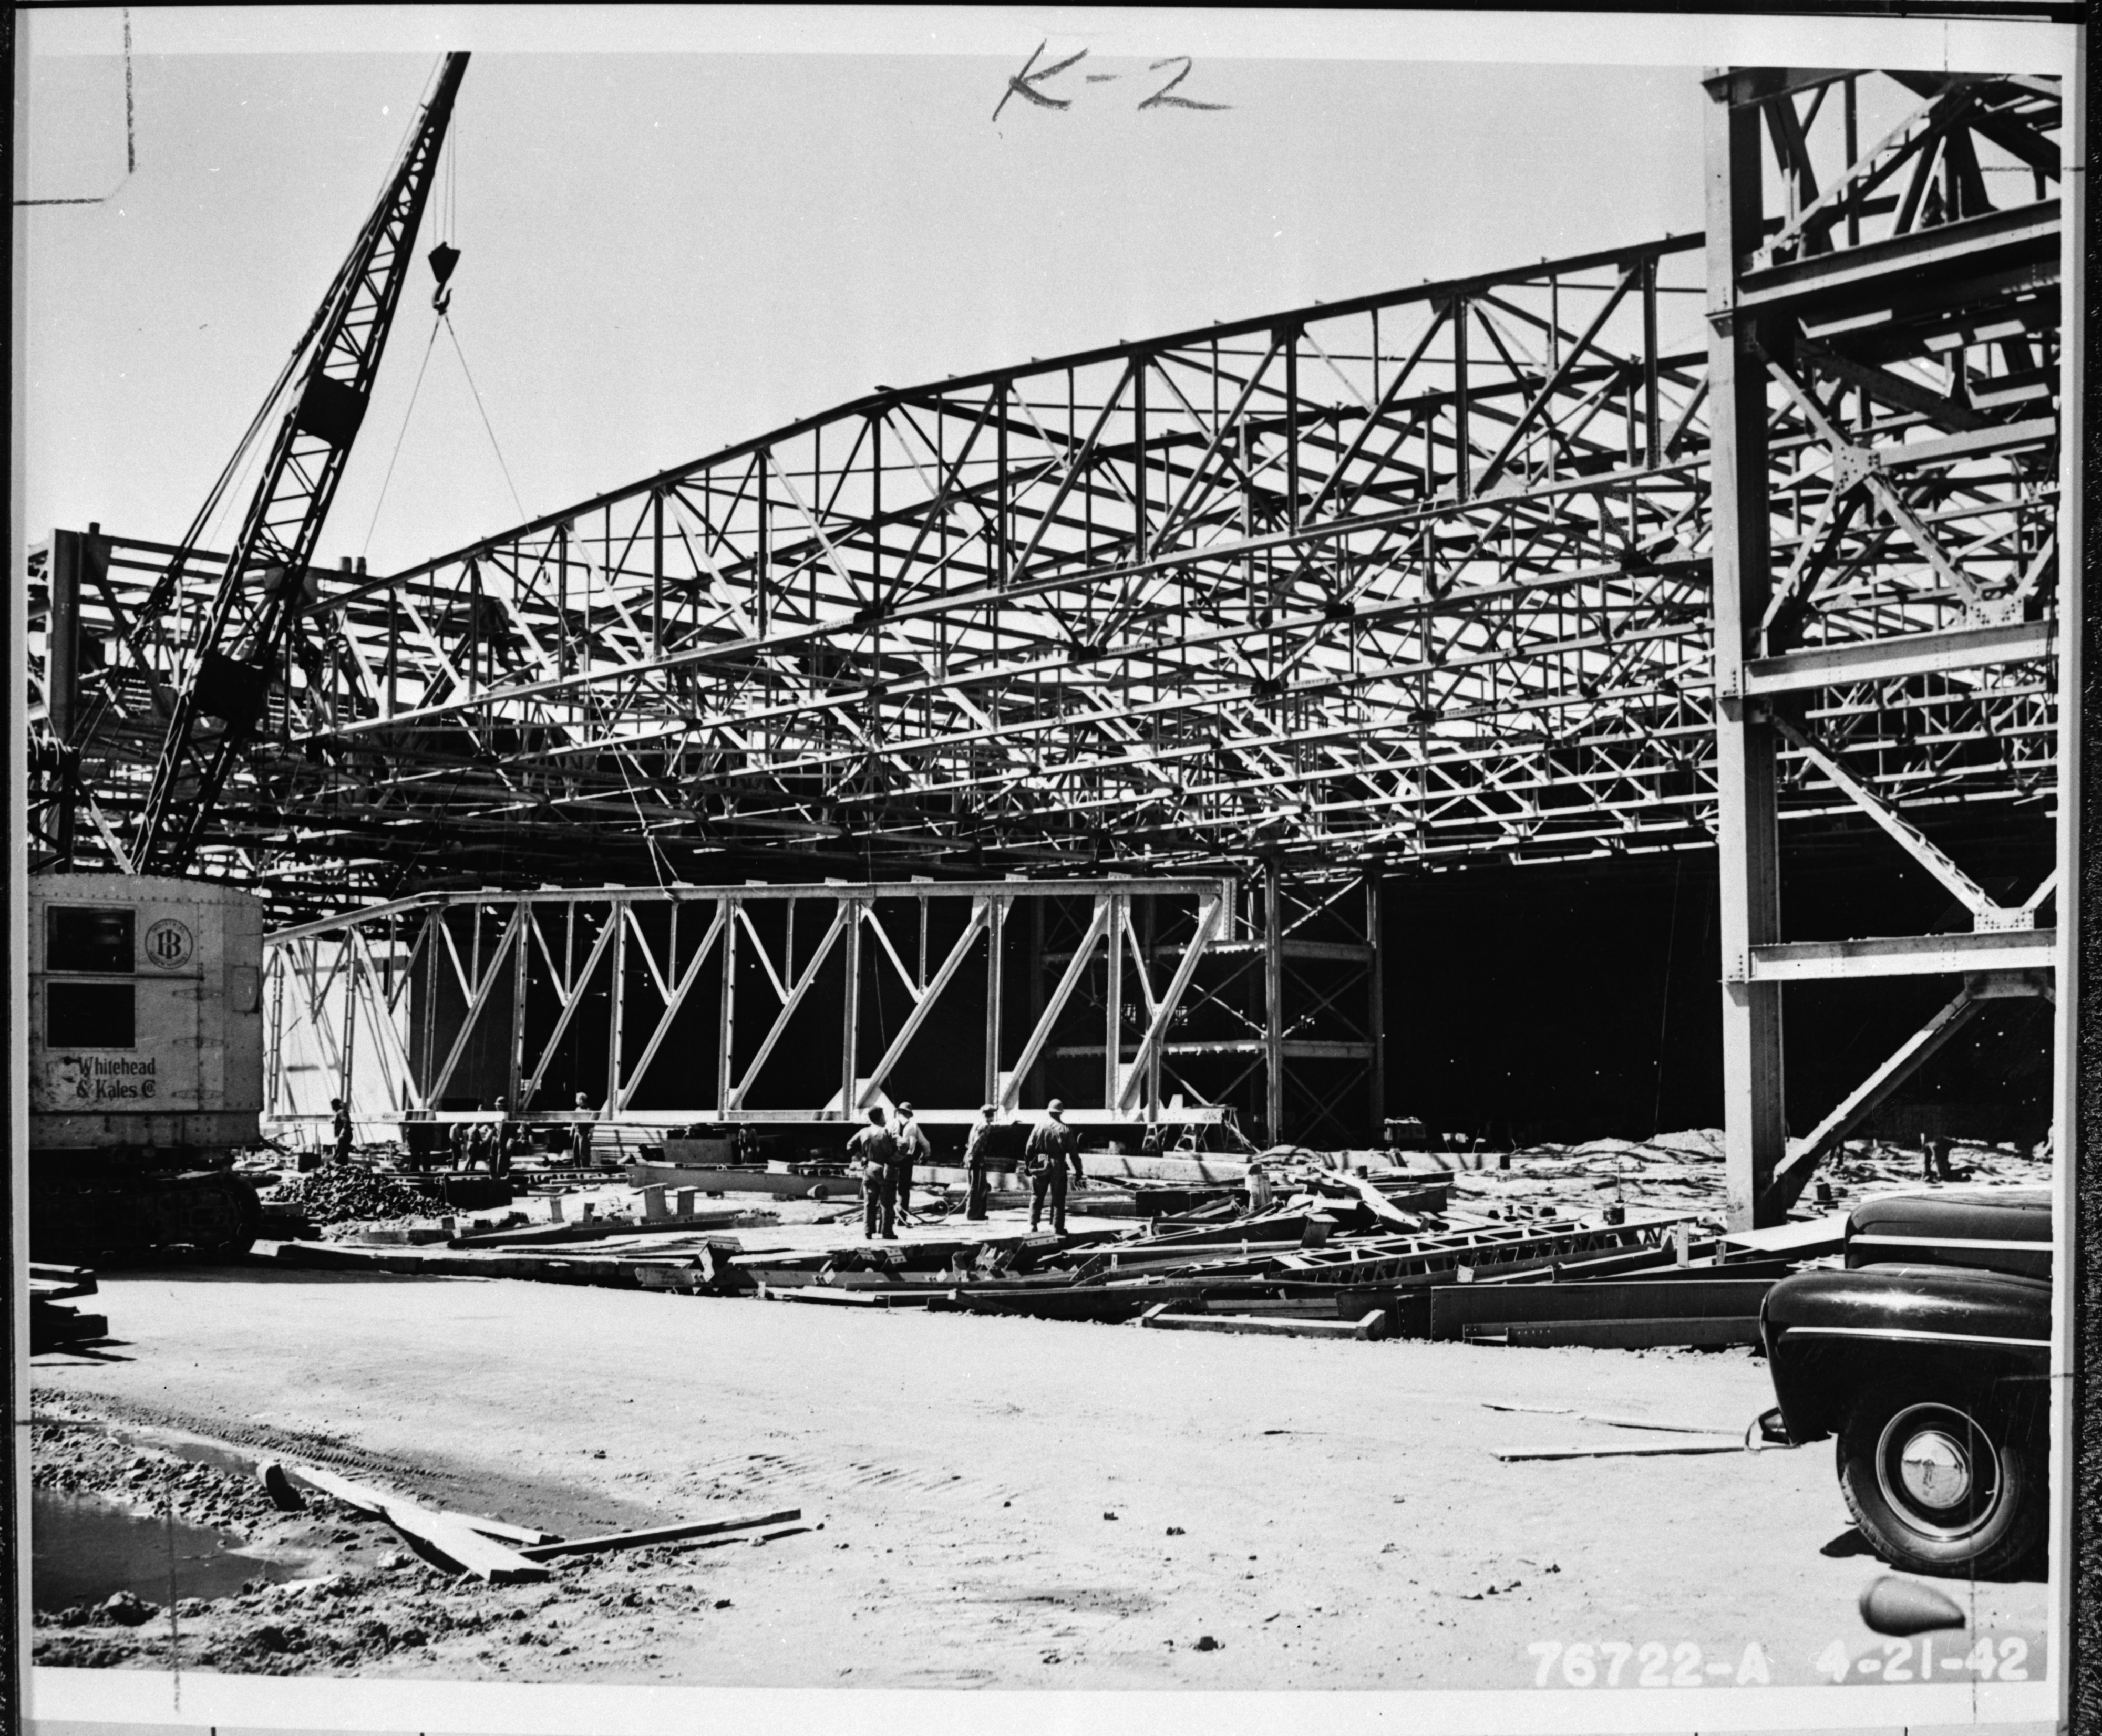 Building the Willow Run Bomber Plant, circa 1941 image